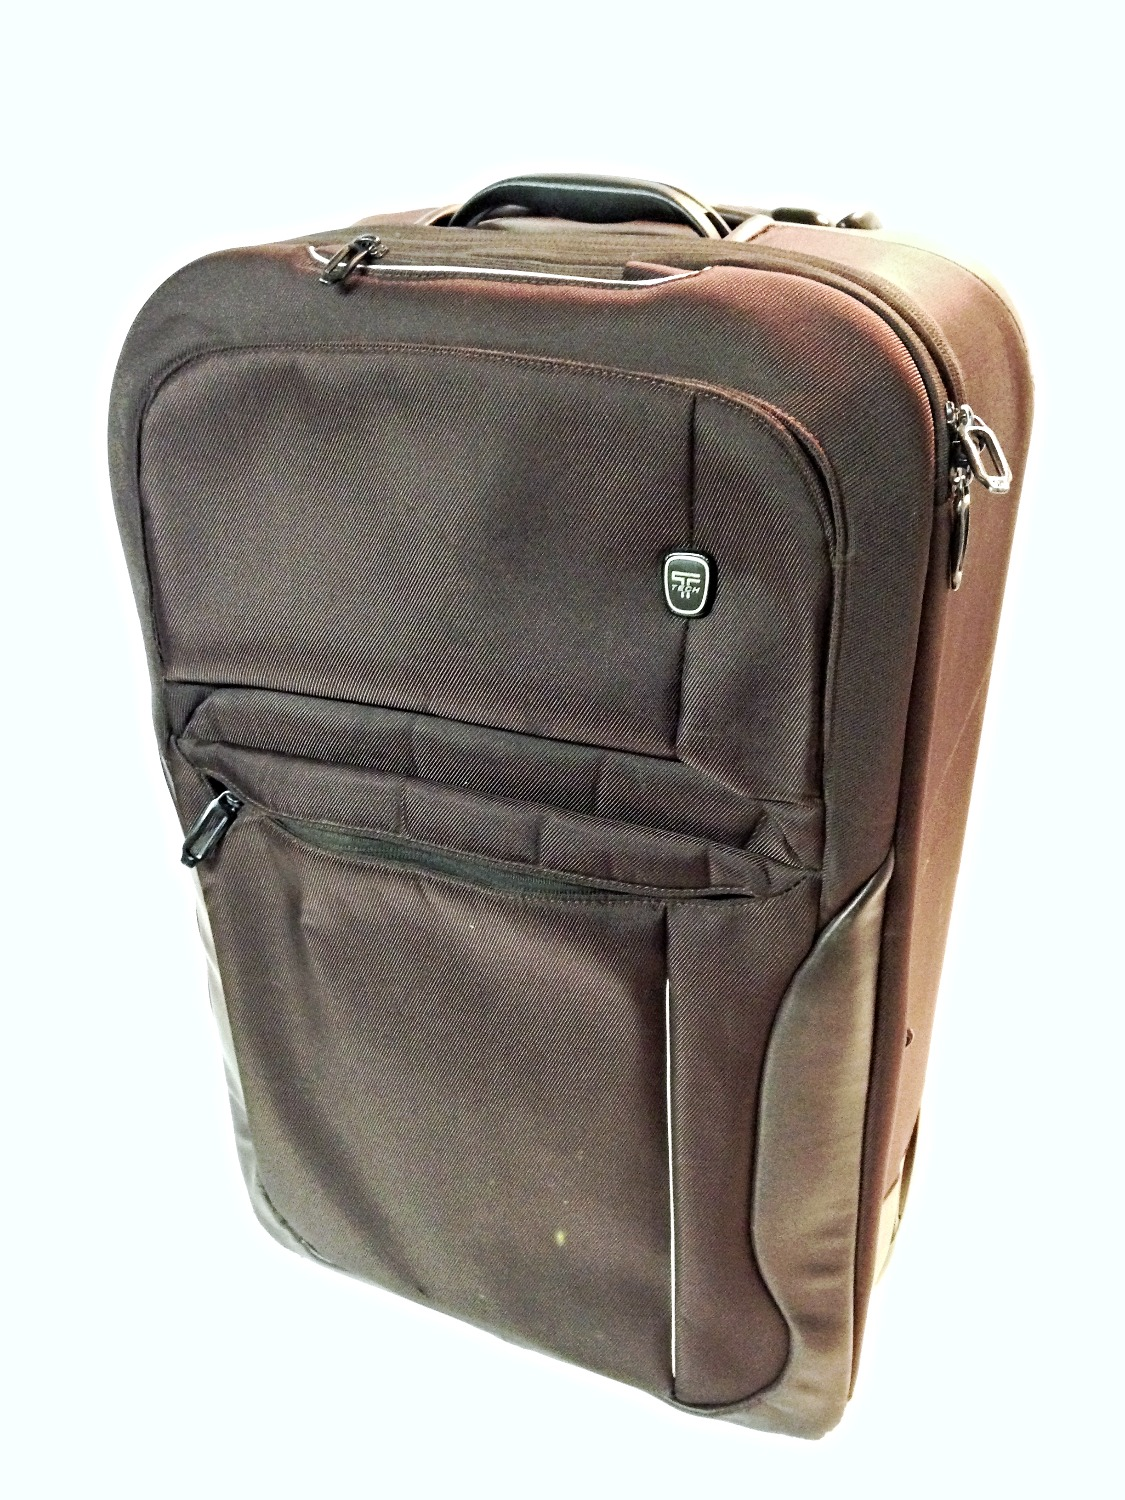 Brown carry-on Luggage